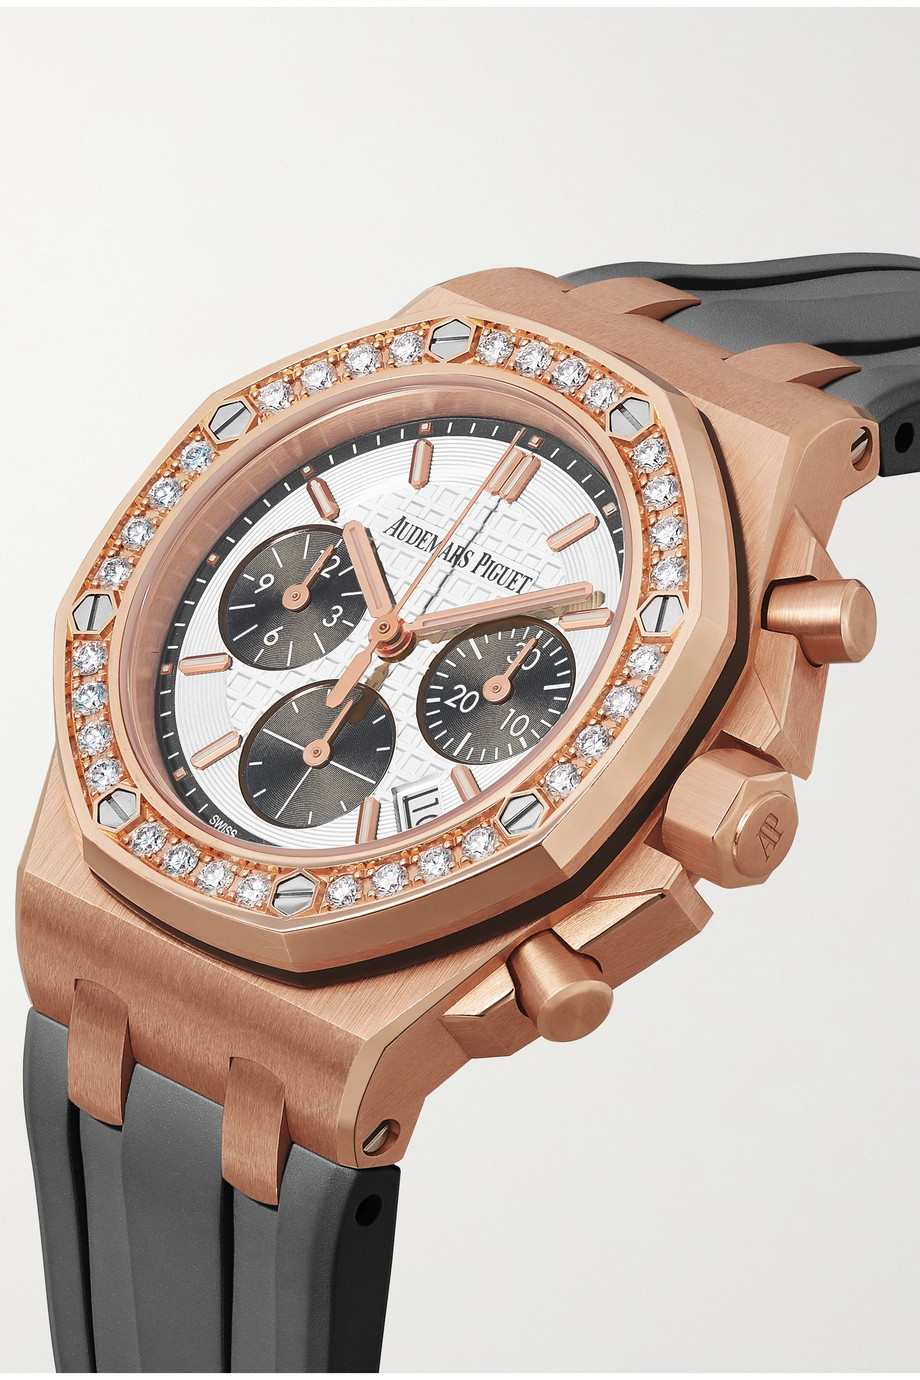 Audemars Piguet Royal Oak Offshore Automatic Chronograph 37mm 18-karat pink gold, rubber and diamond watch